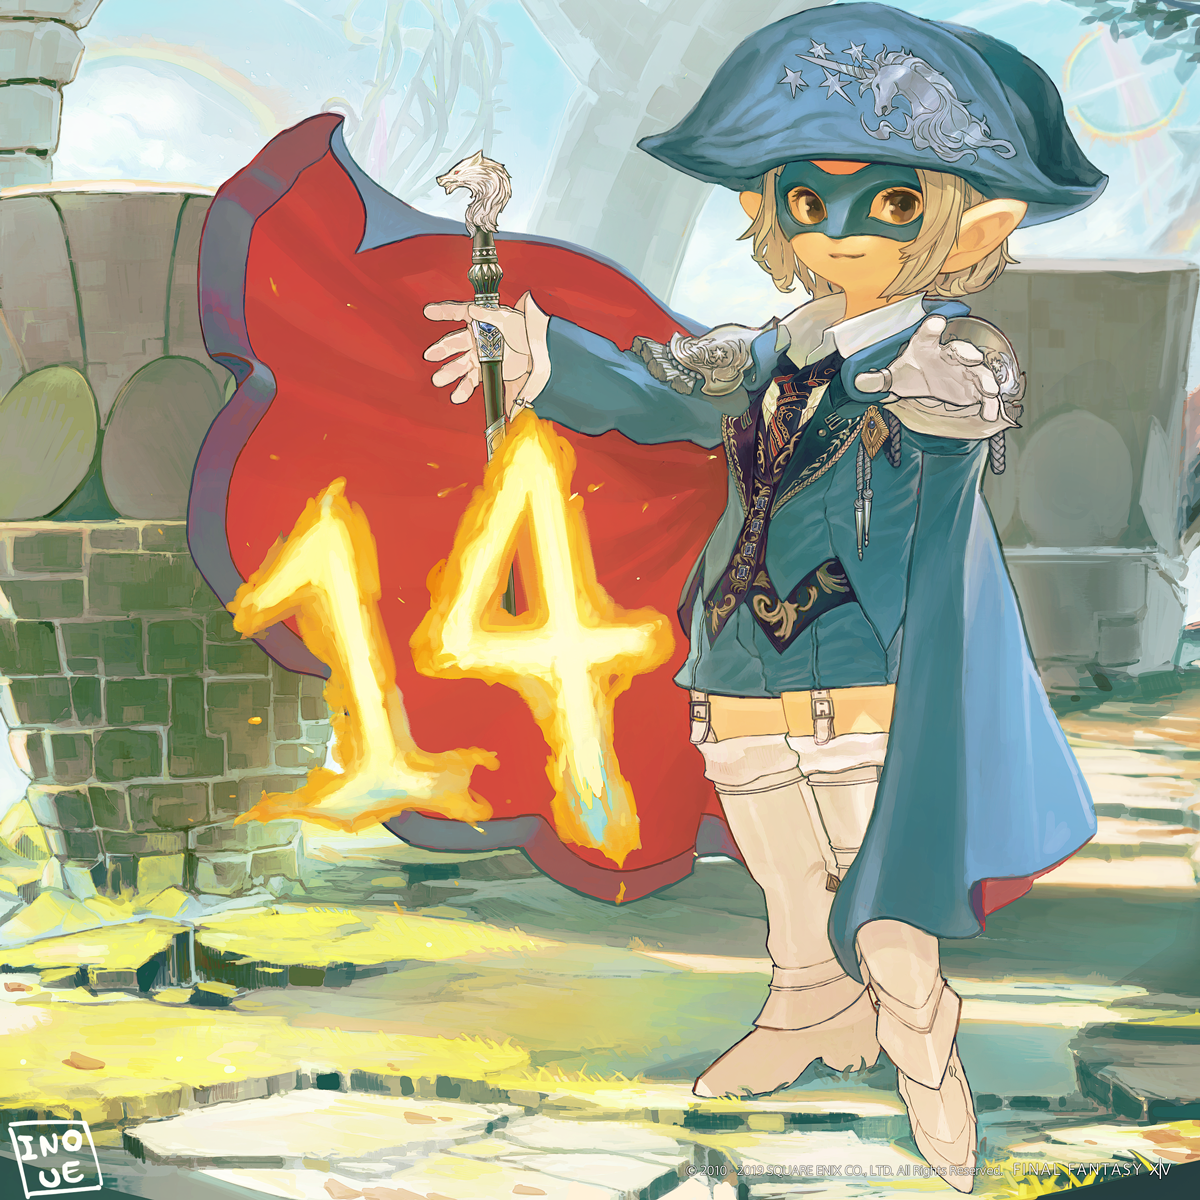 Lodestone: Illustrated Shadowbringers Countdown - 14 Days Left